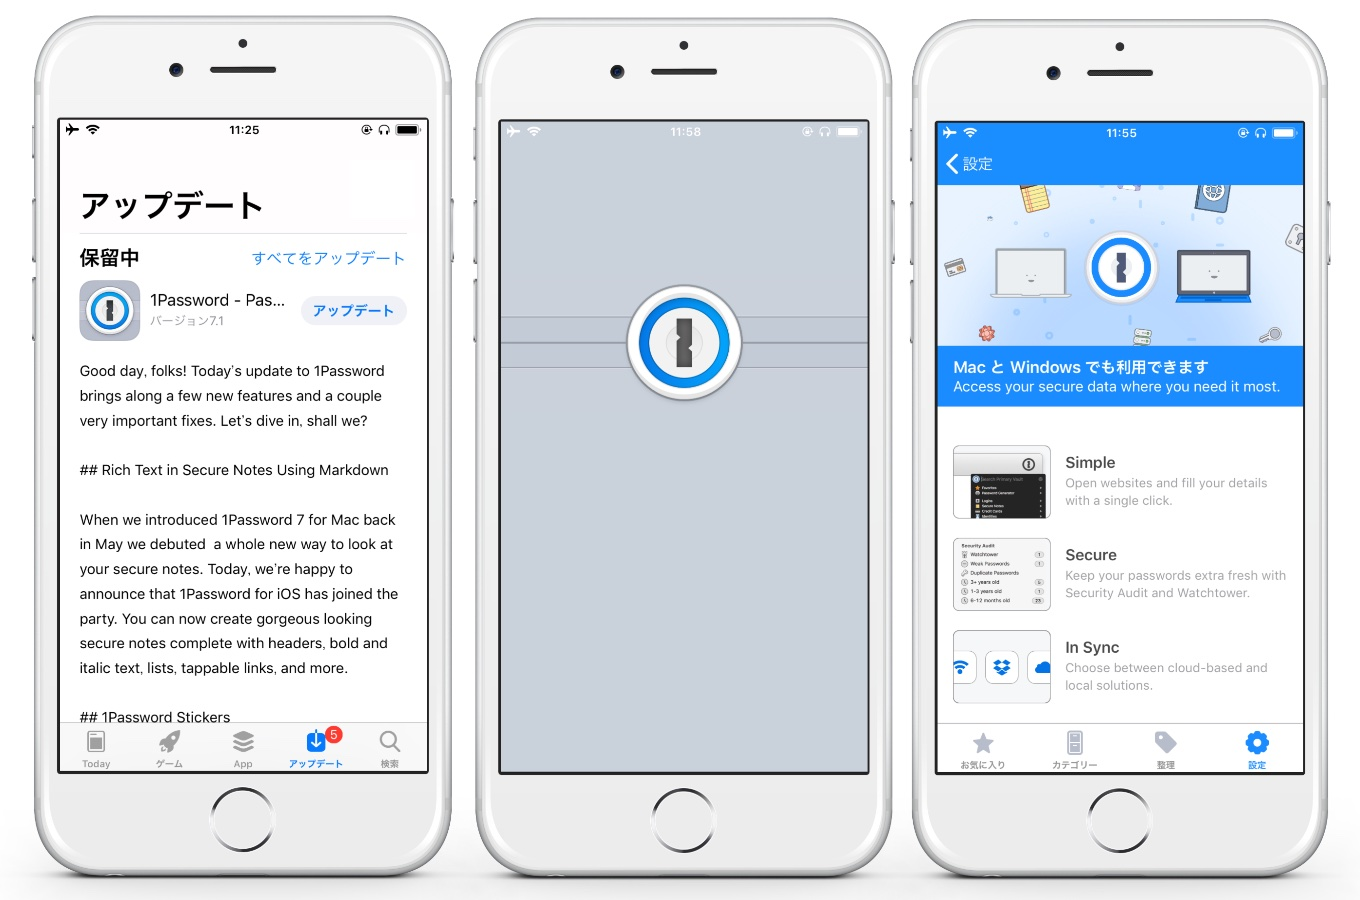 1Password for iOS v7.1